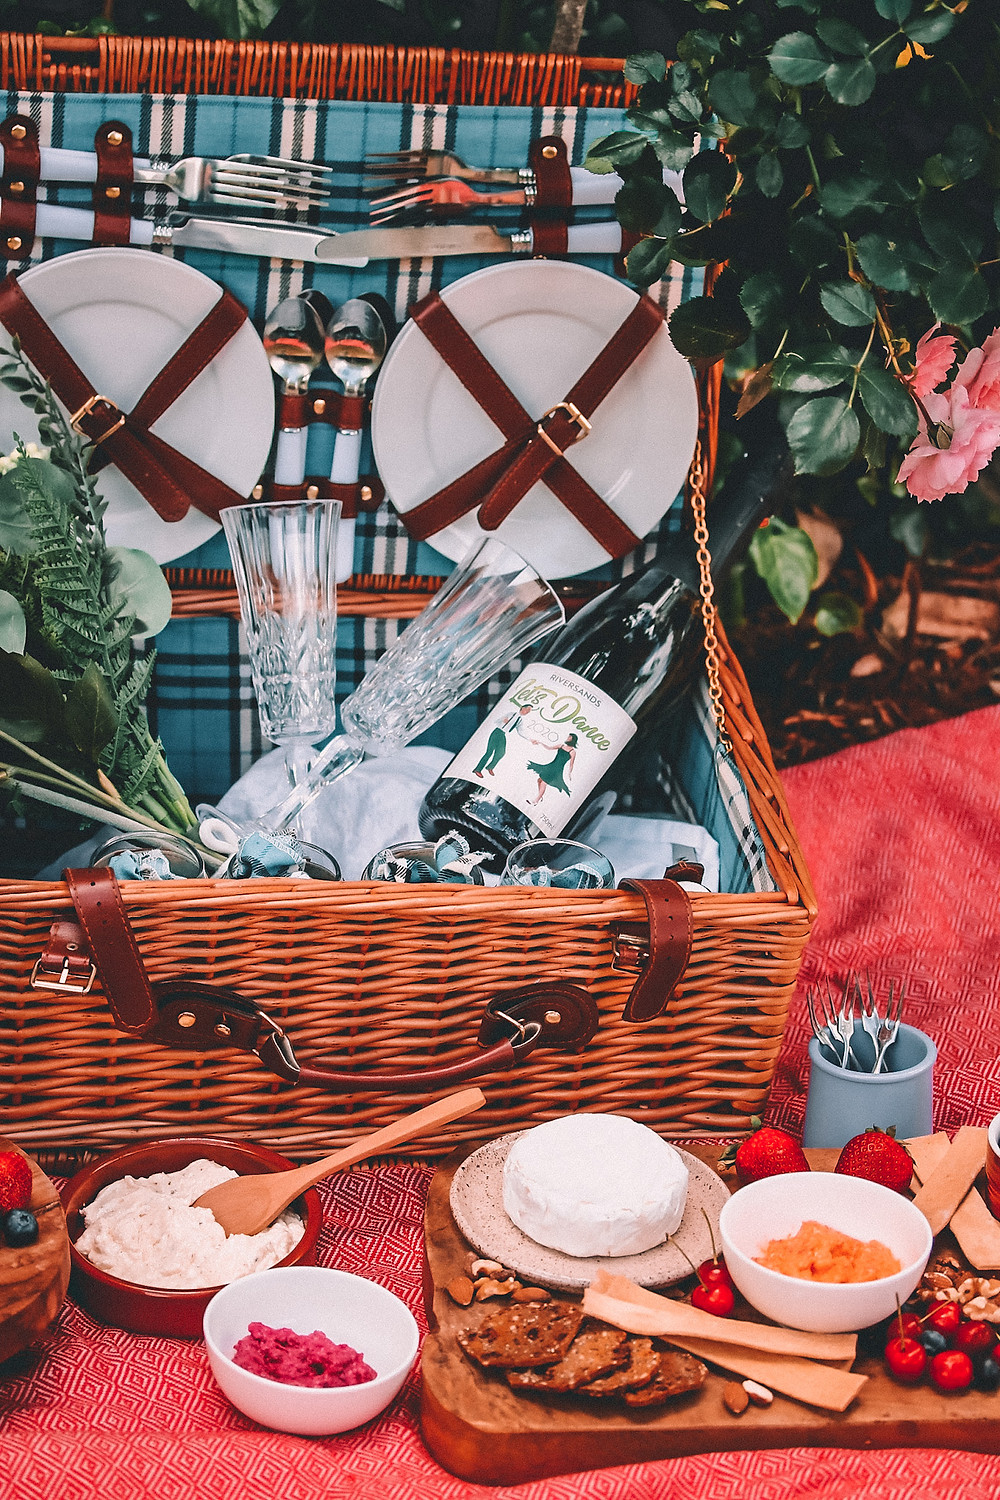 Romantic picnic with champagne and nibbles